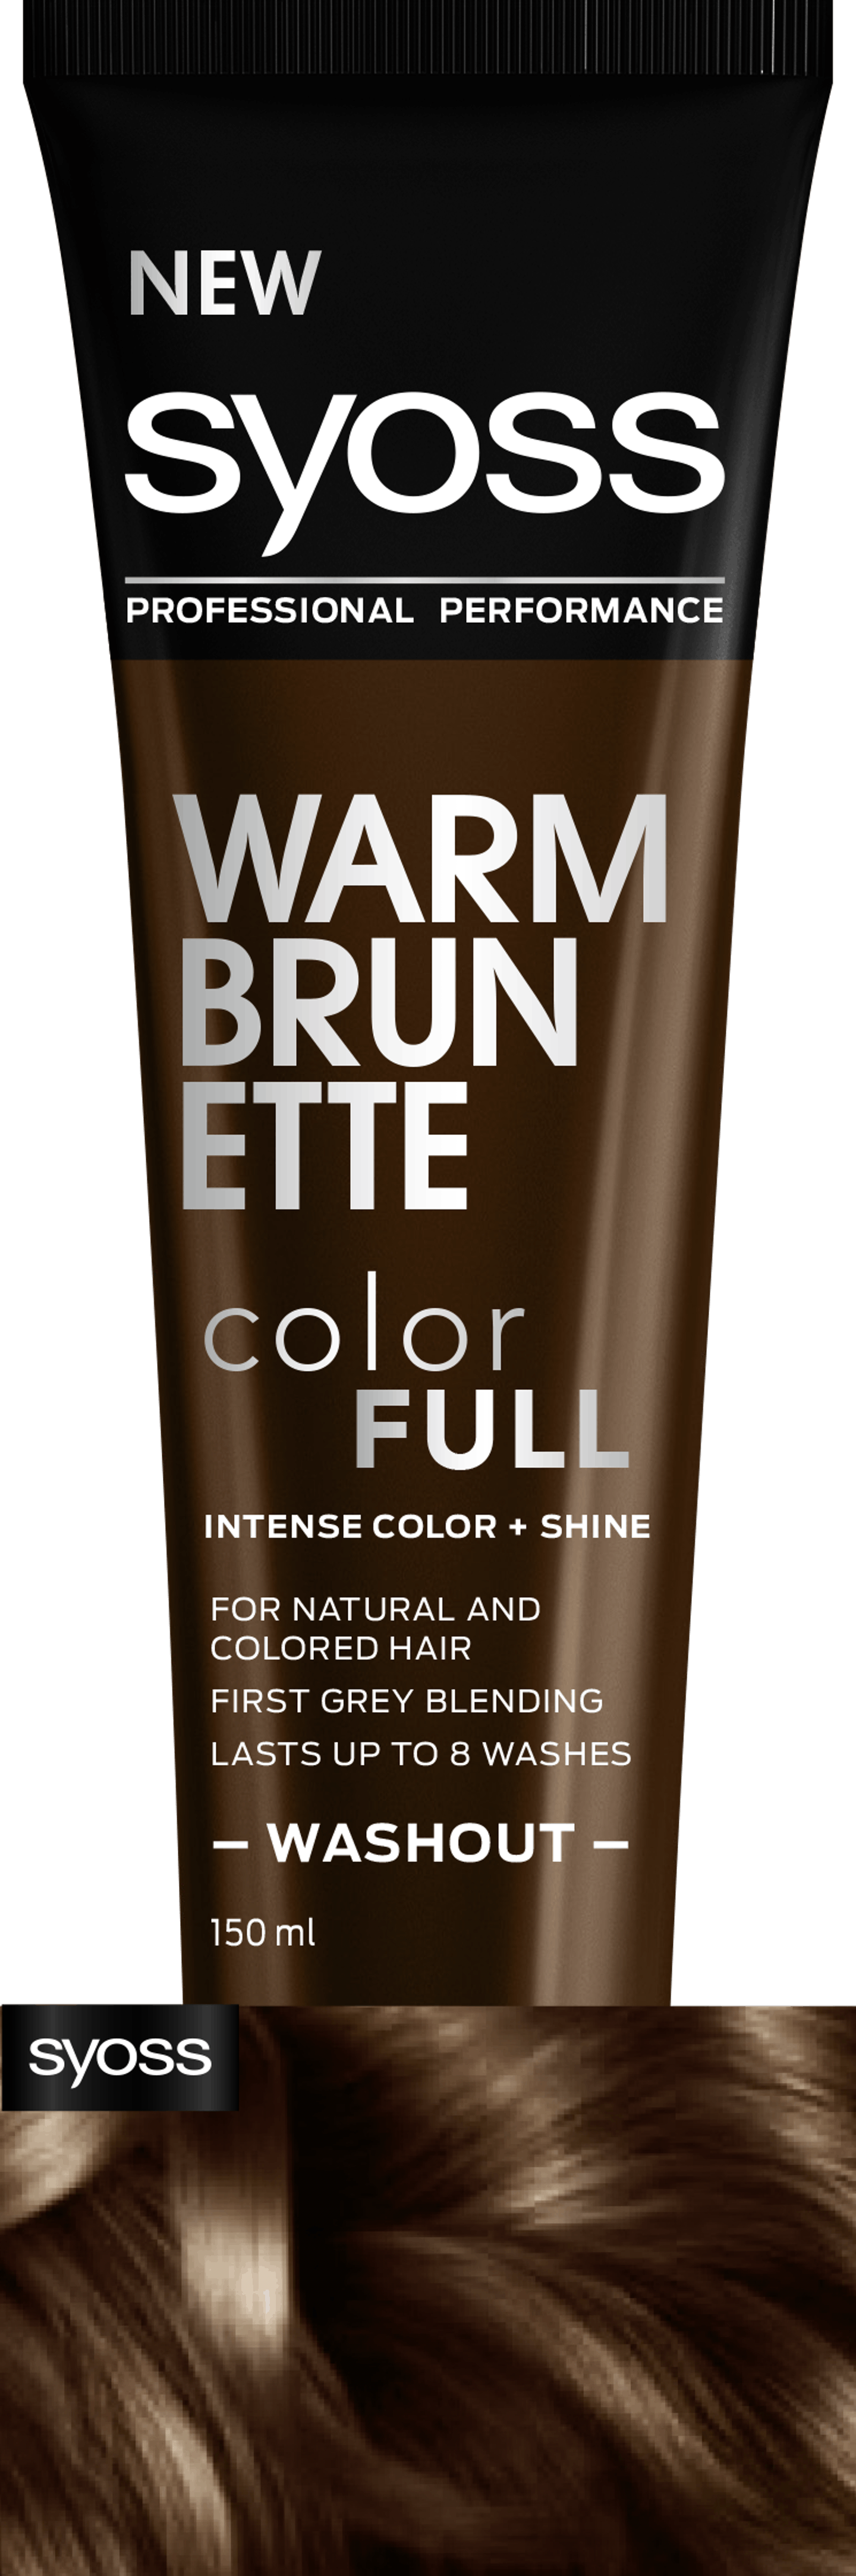 Syoss Warm Brunette Color Full